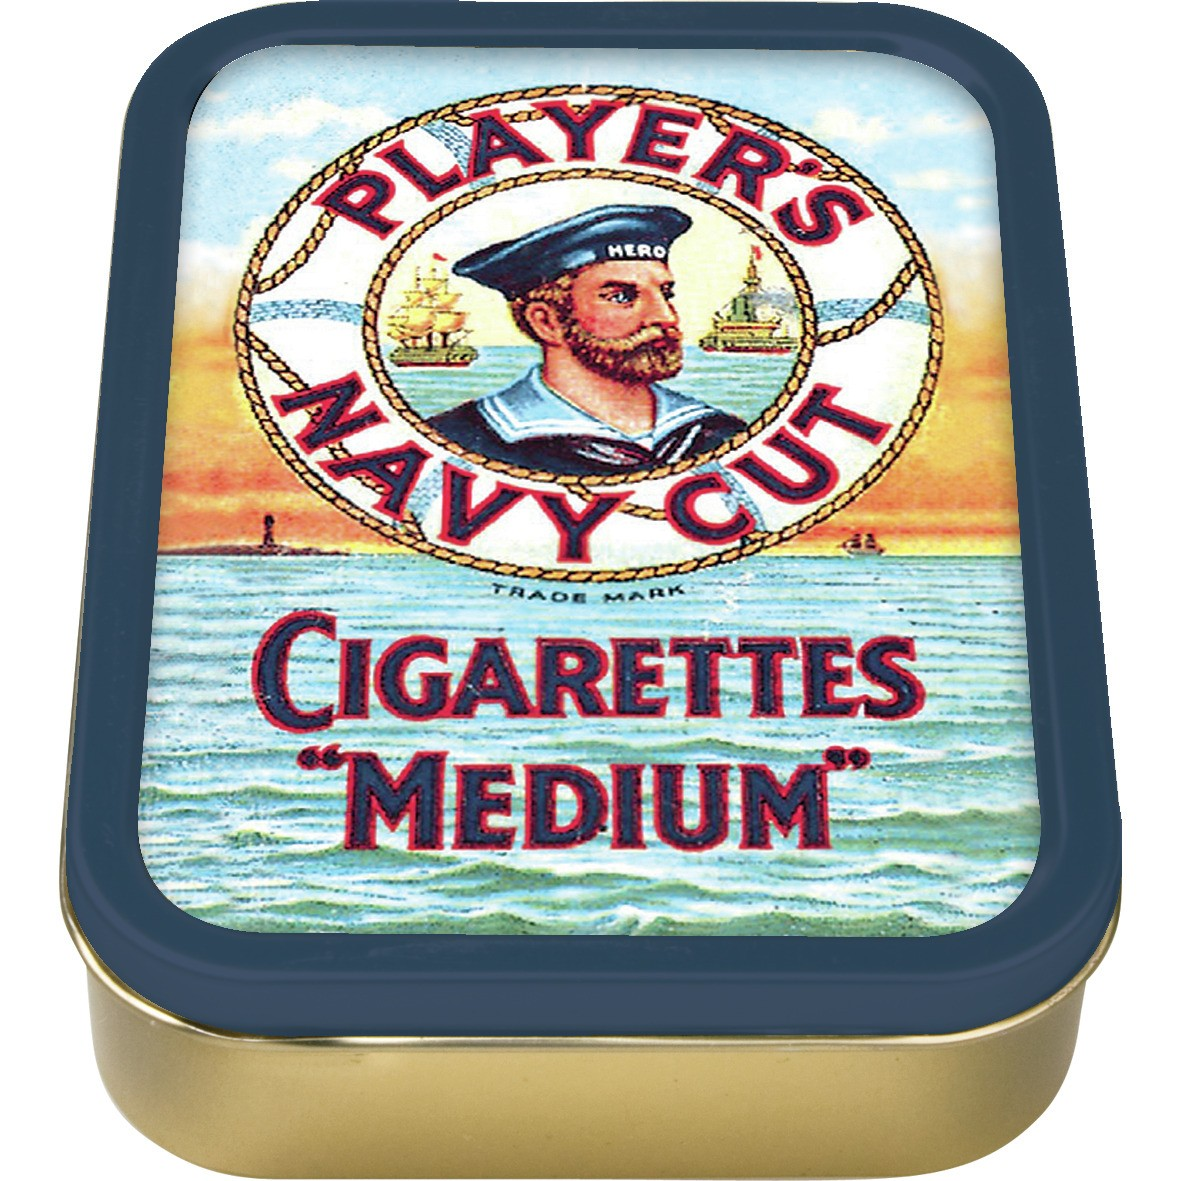 NEW 2oz PLAYERS CIGARETTES TOBACCO COLLECTORS TIN PAPERS VINTAGE ROLLING SMOKING